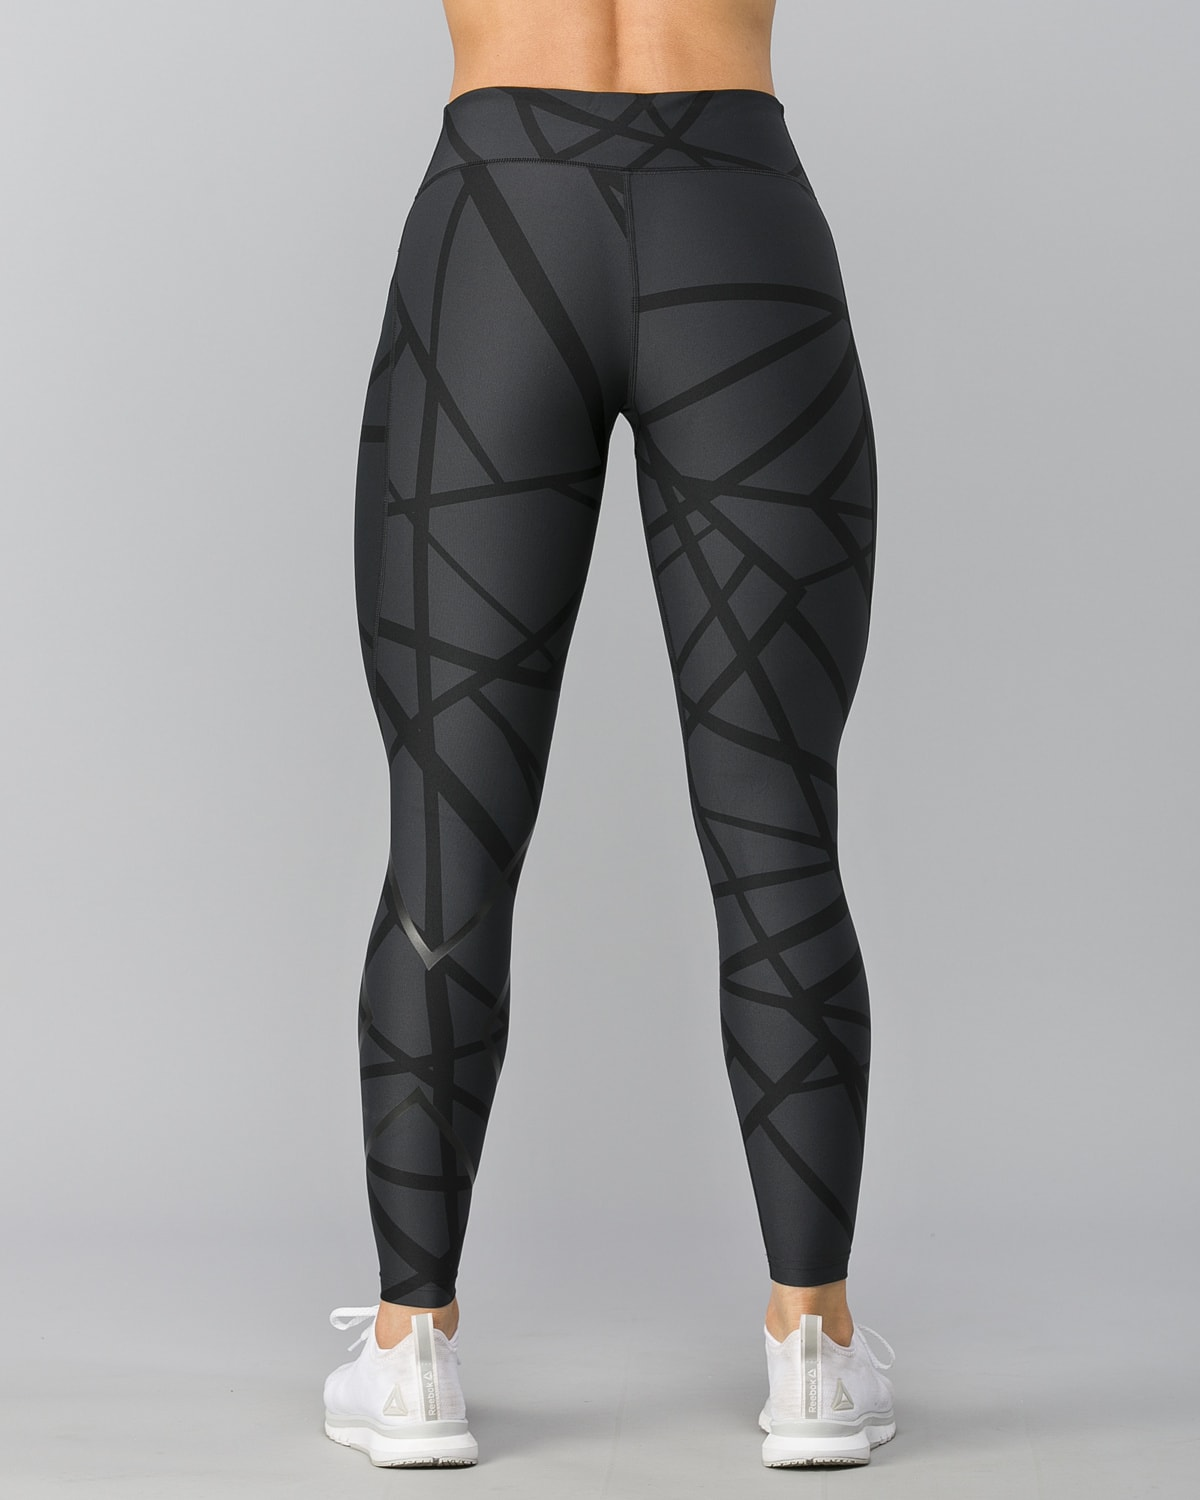 2XU-Print-Mid-Rise-Comp-Tights–Paint-Strokes-Nero2